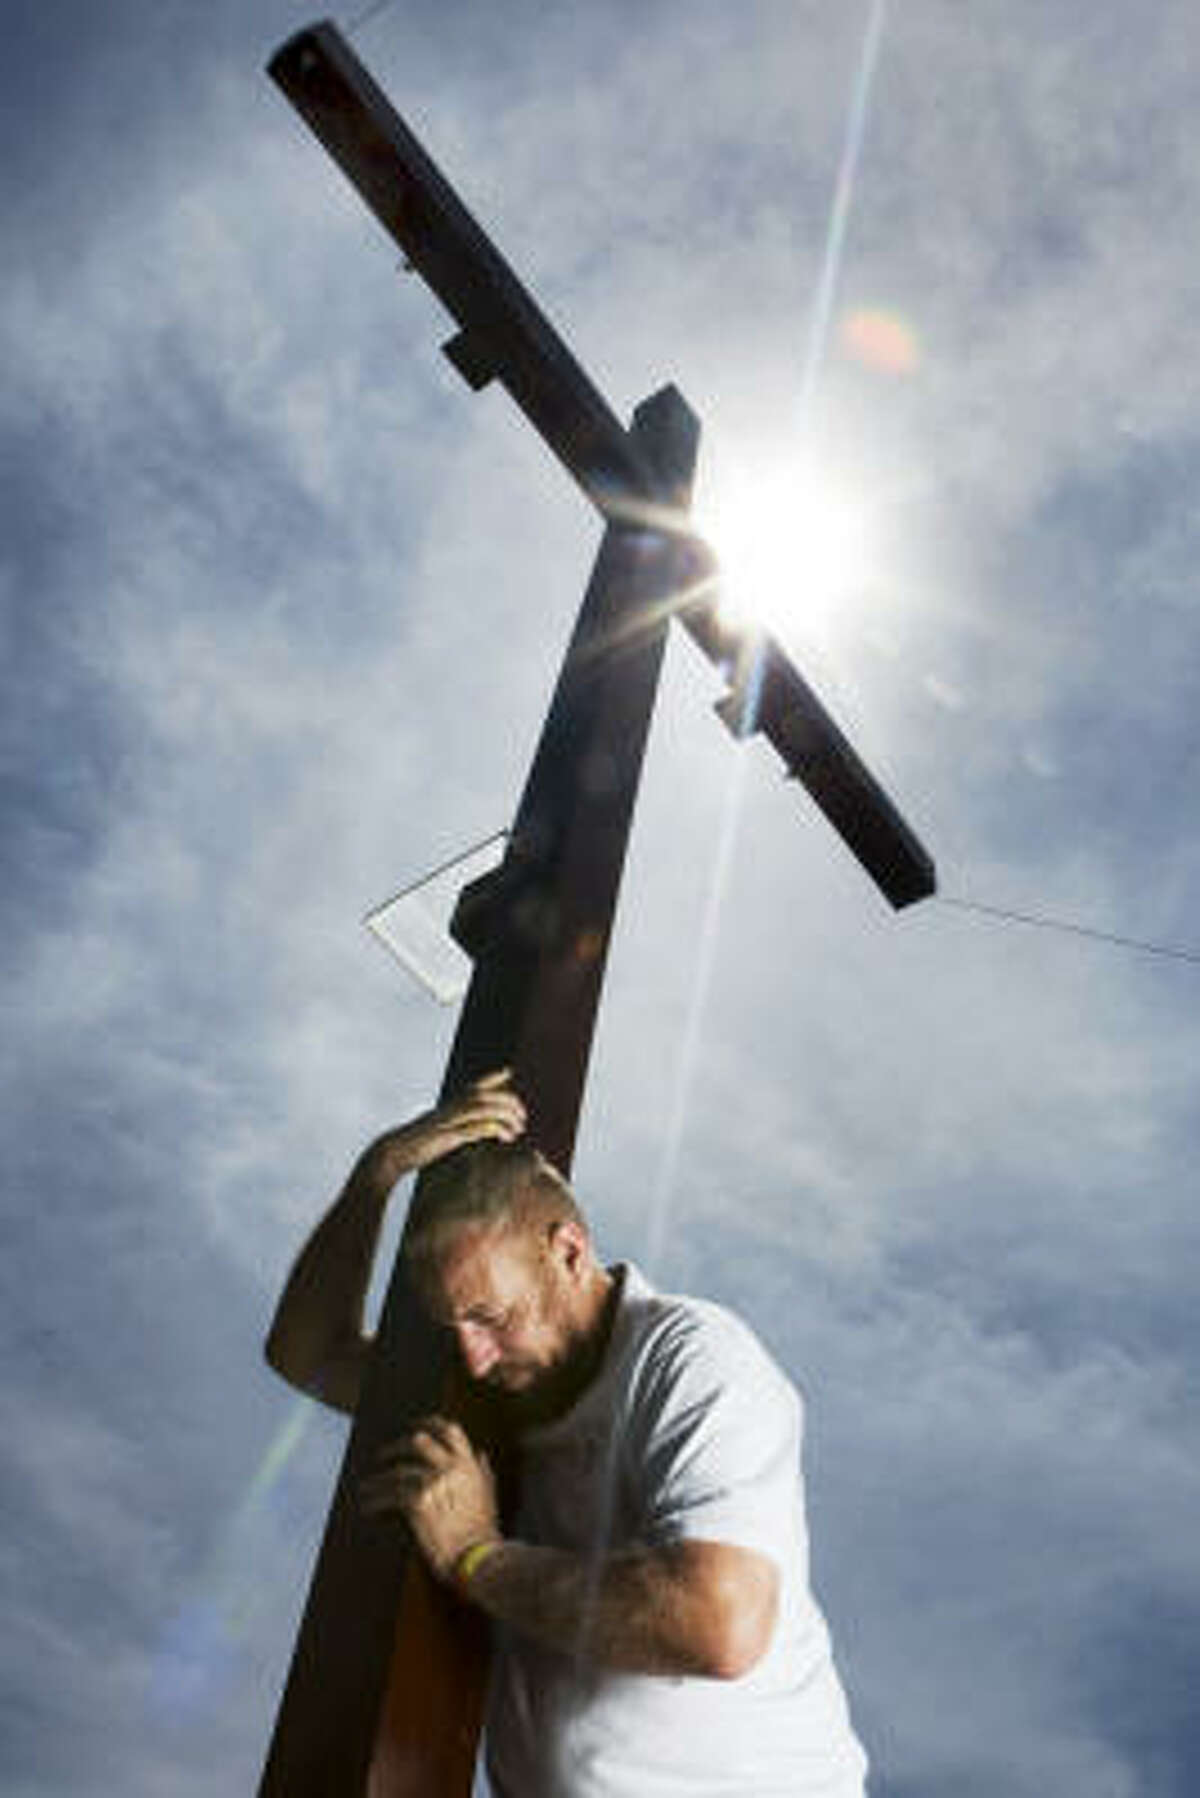 Joe Gaston poses for a portrait with the cross he will hang on to commemorate Christ's crucifixion.